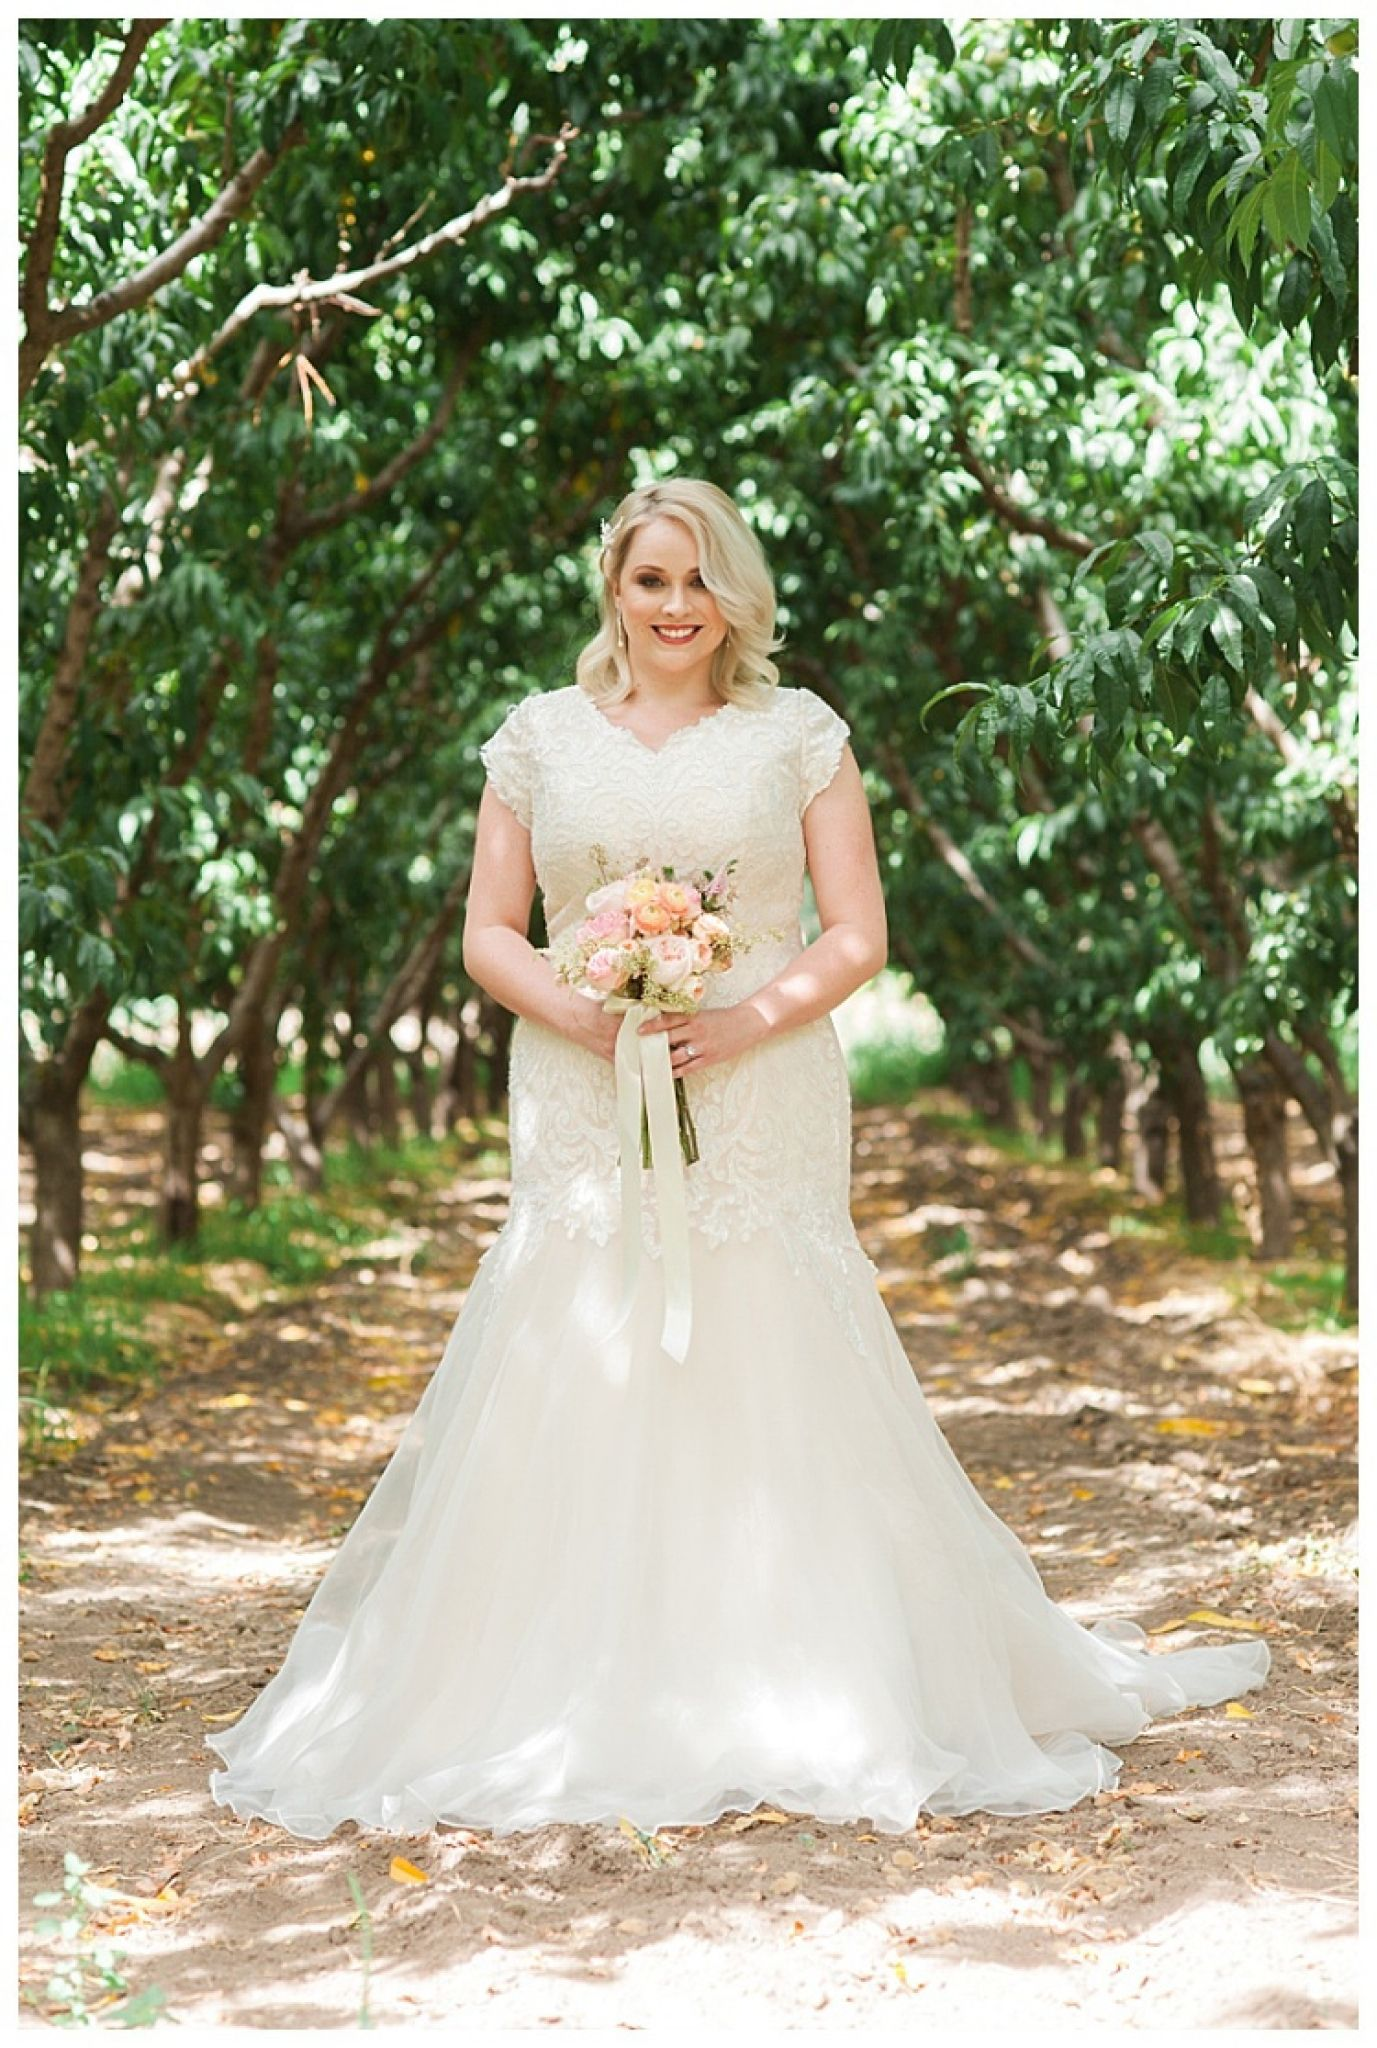 modest wedding dresses utah - dress for country wedding guest Check ...